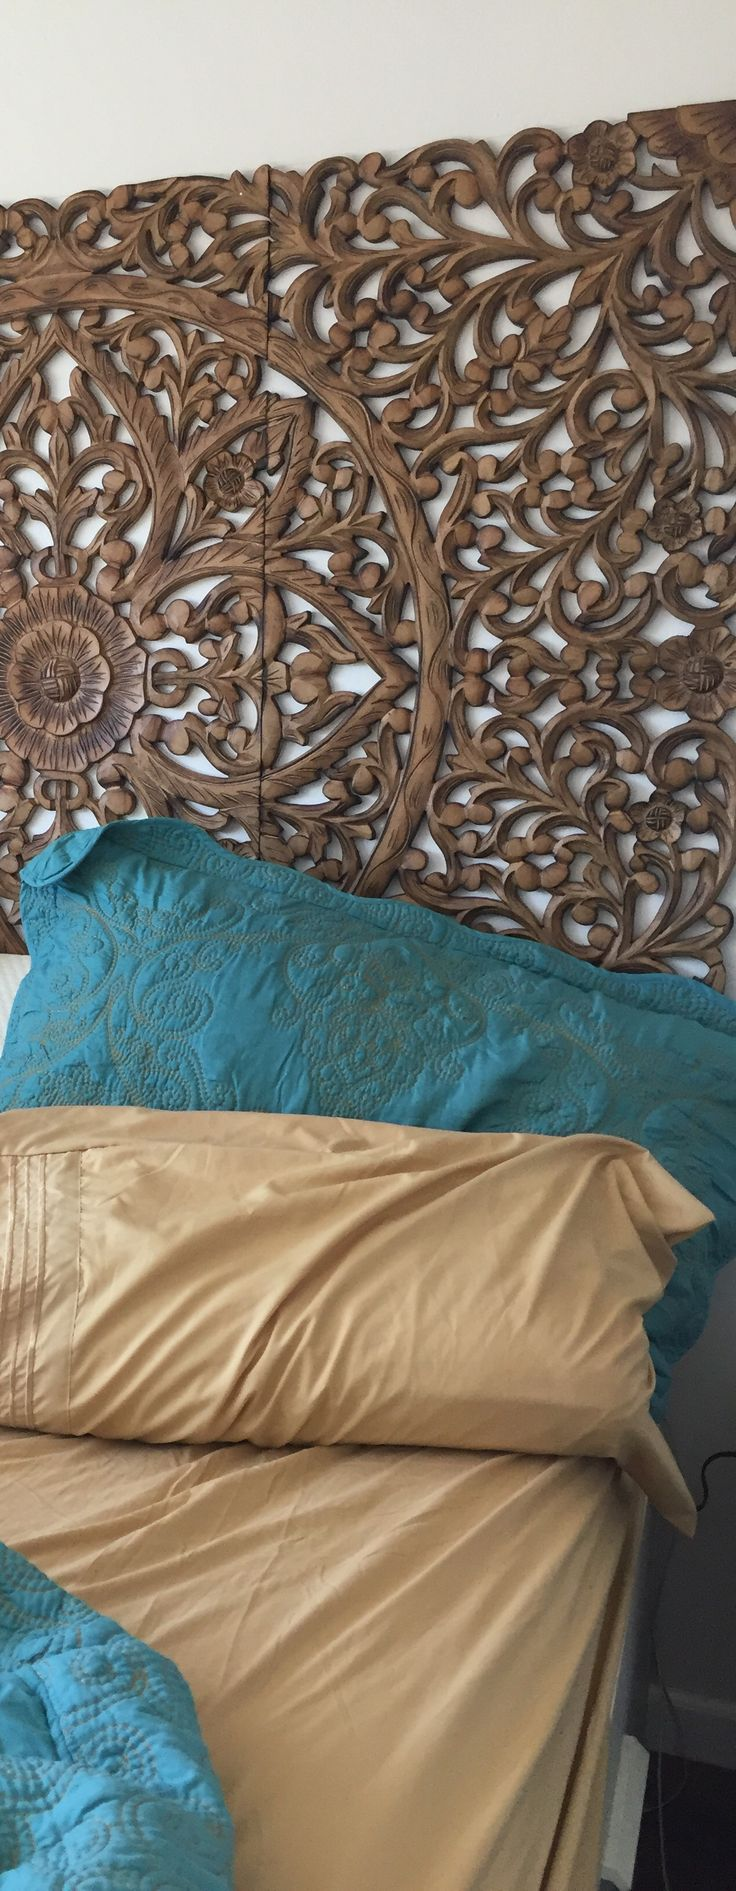 Balinese Carved Wall Art As Headboard And Quilt Teal And